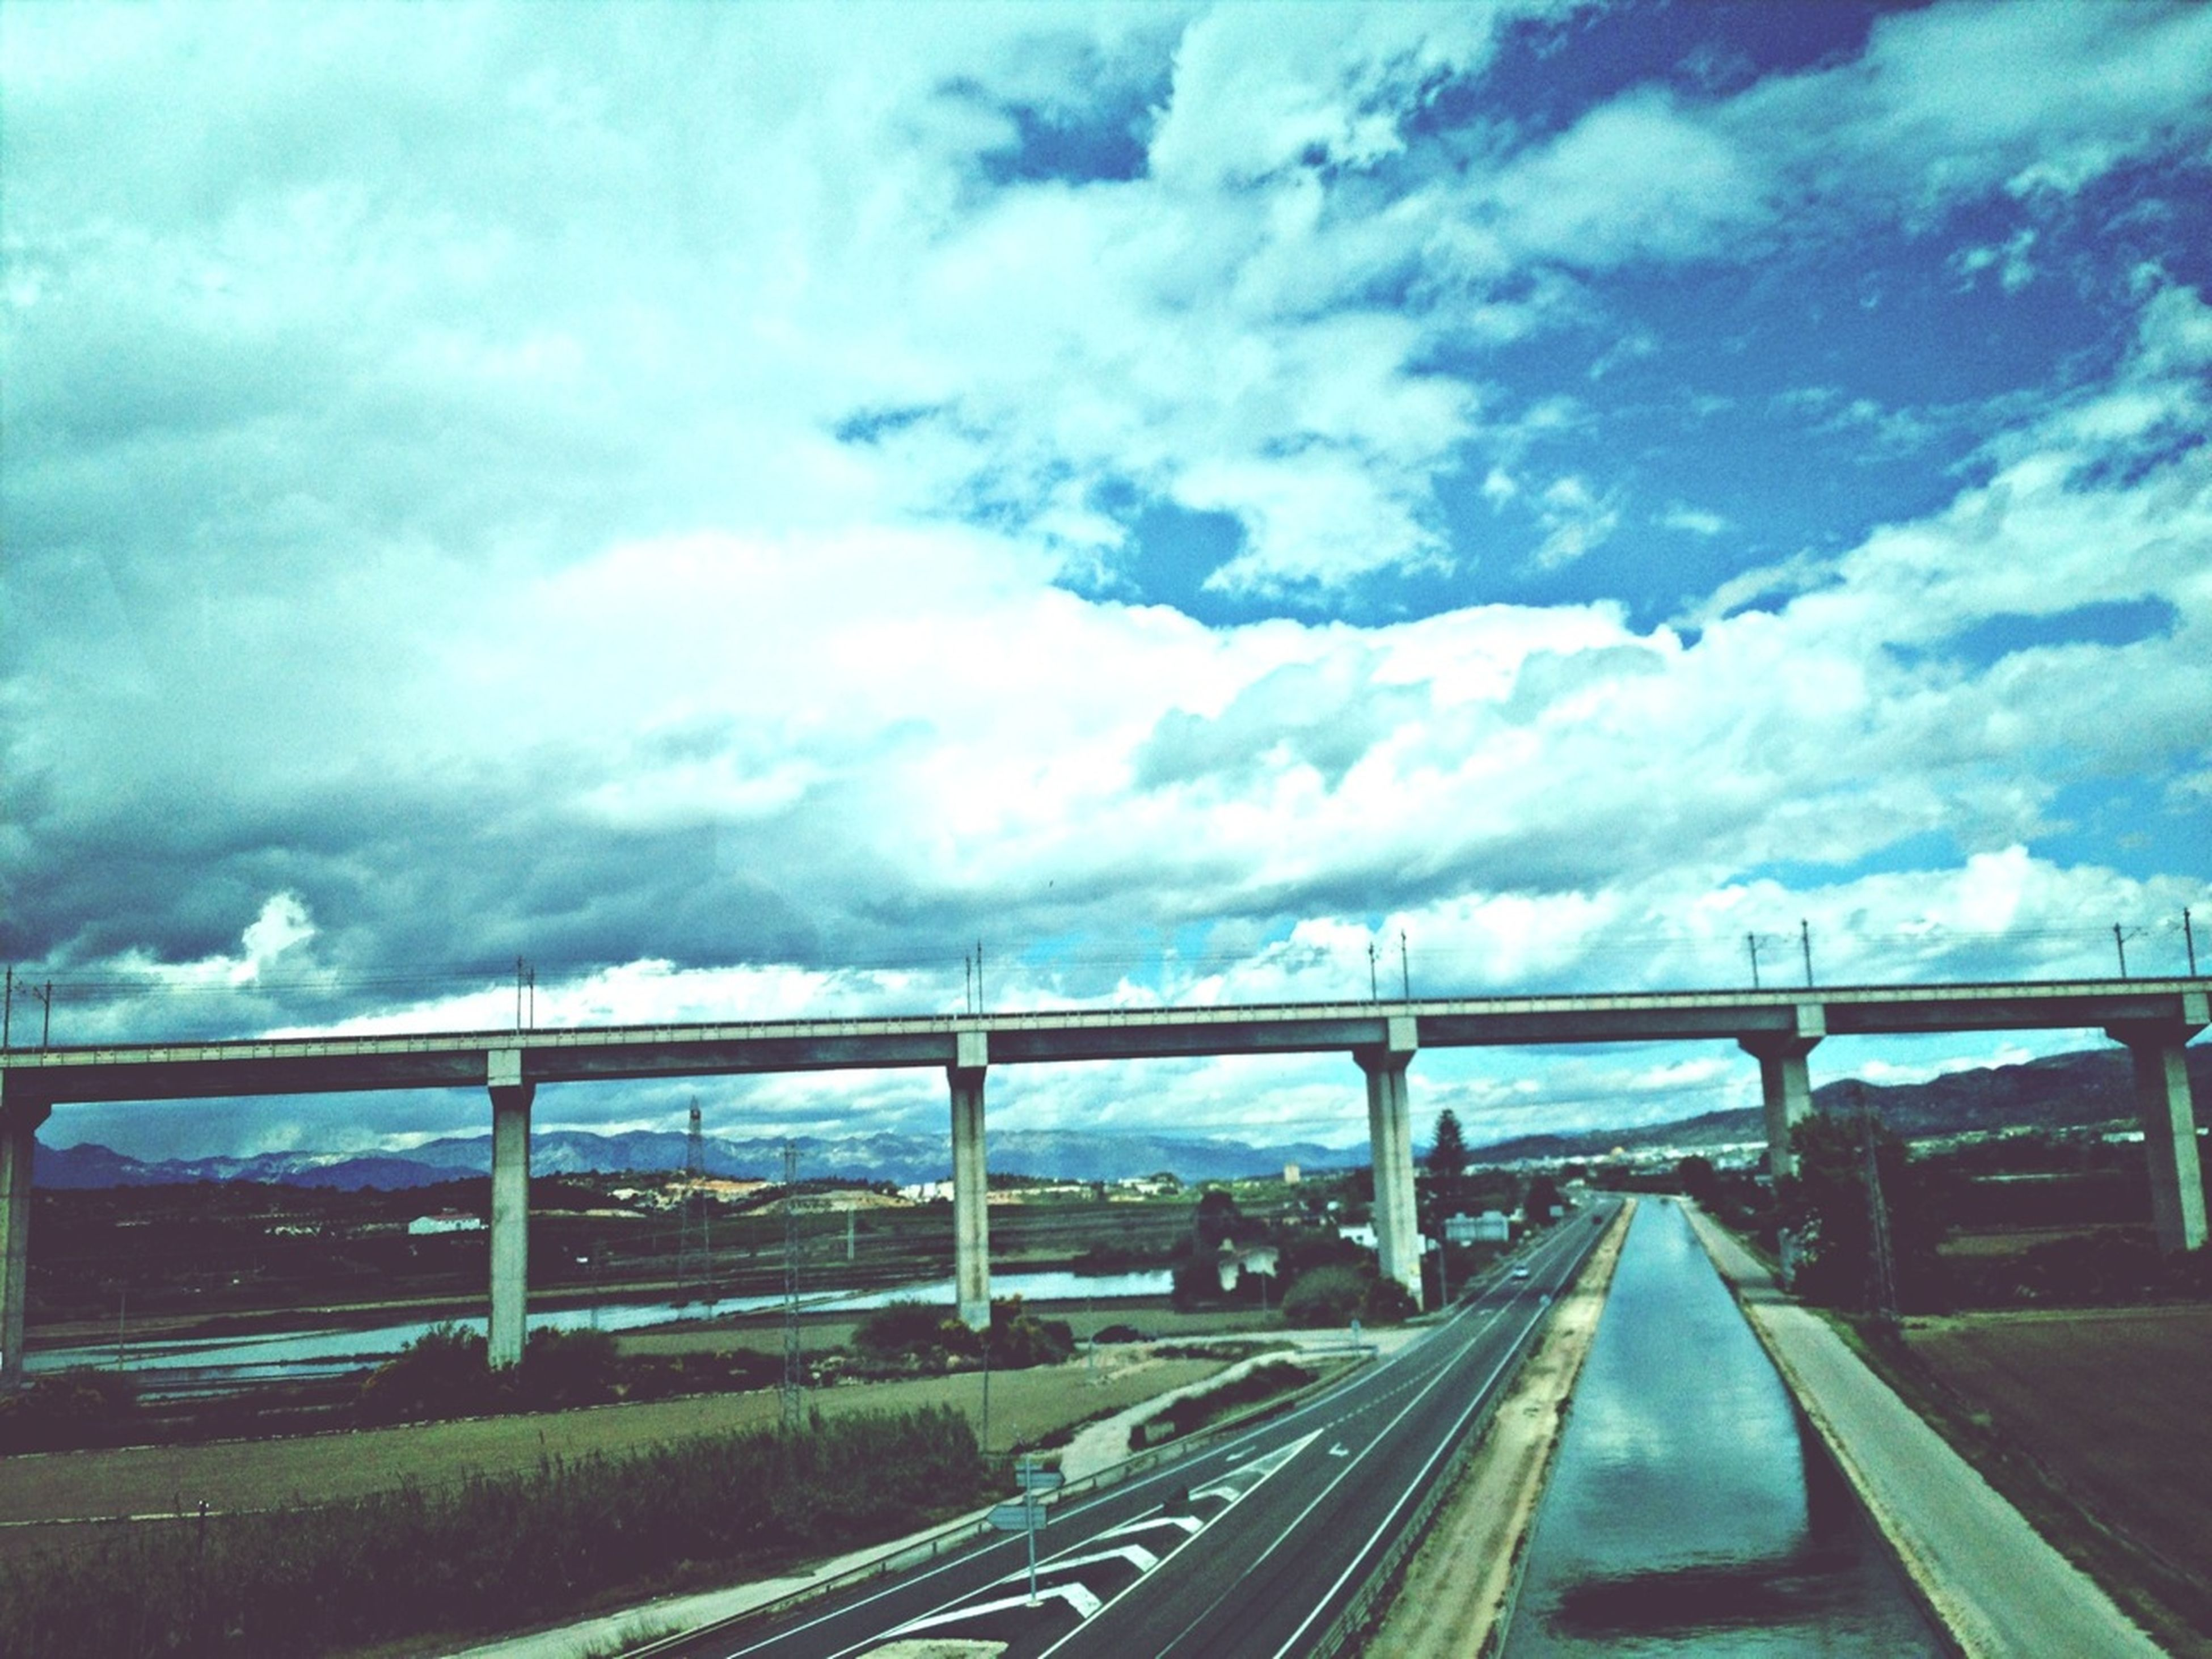 transportation, sky, cloud - sky, cloudy, road, cloud, the way forward, mode of transport, weather, land vehicle, car, diminishing perspective, railroad track, rail transportation, railing, overcast, connection, highway, road marking, vanishing point